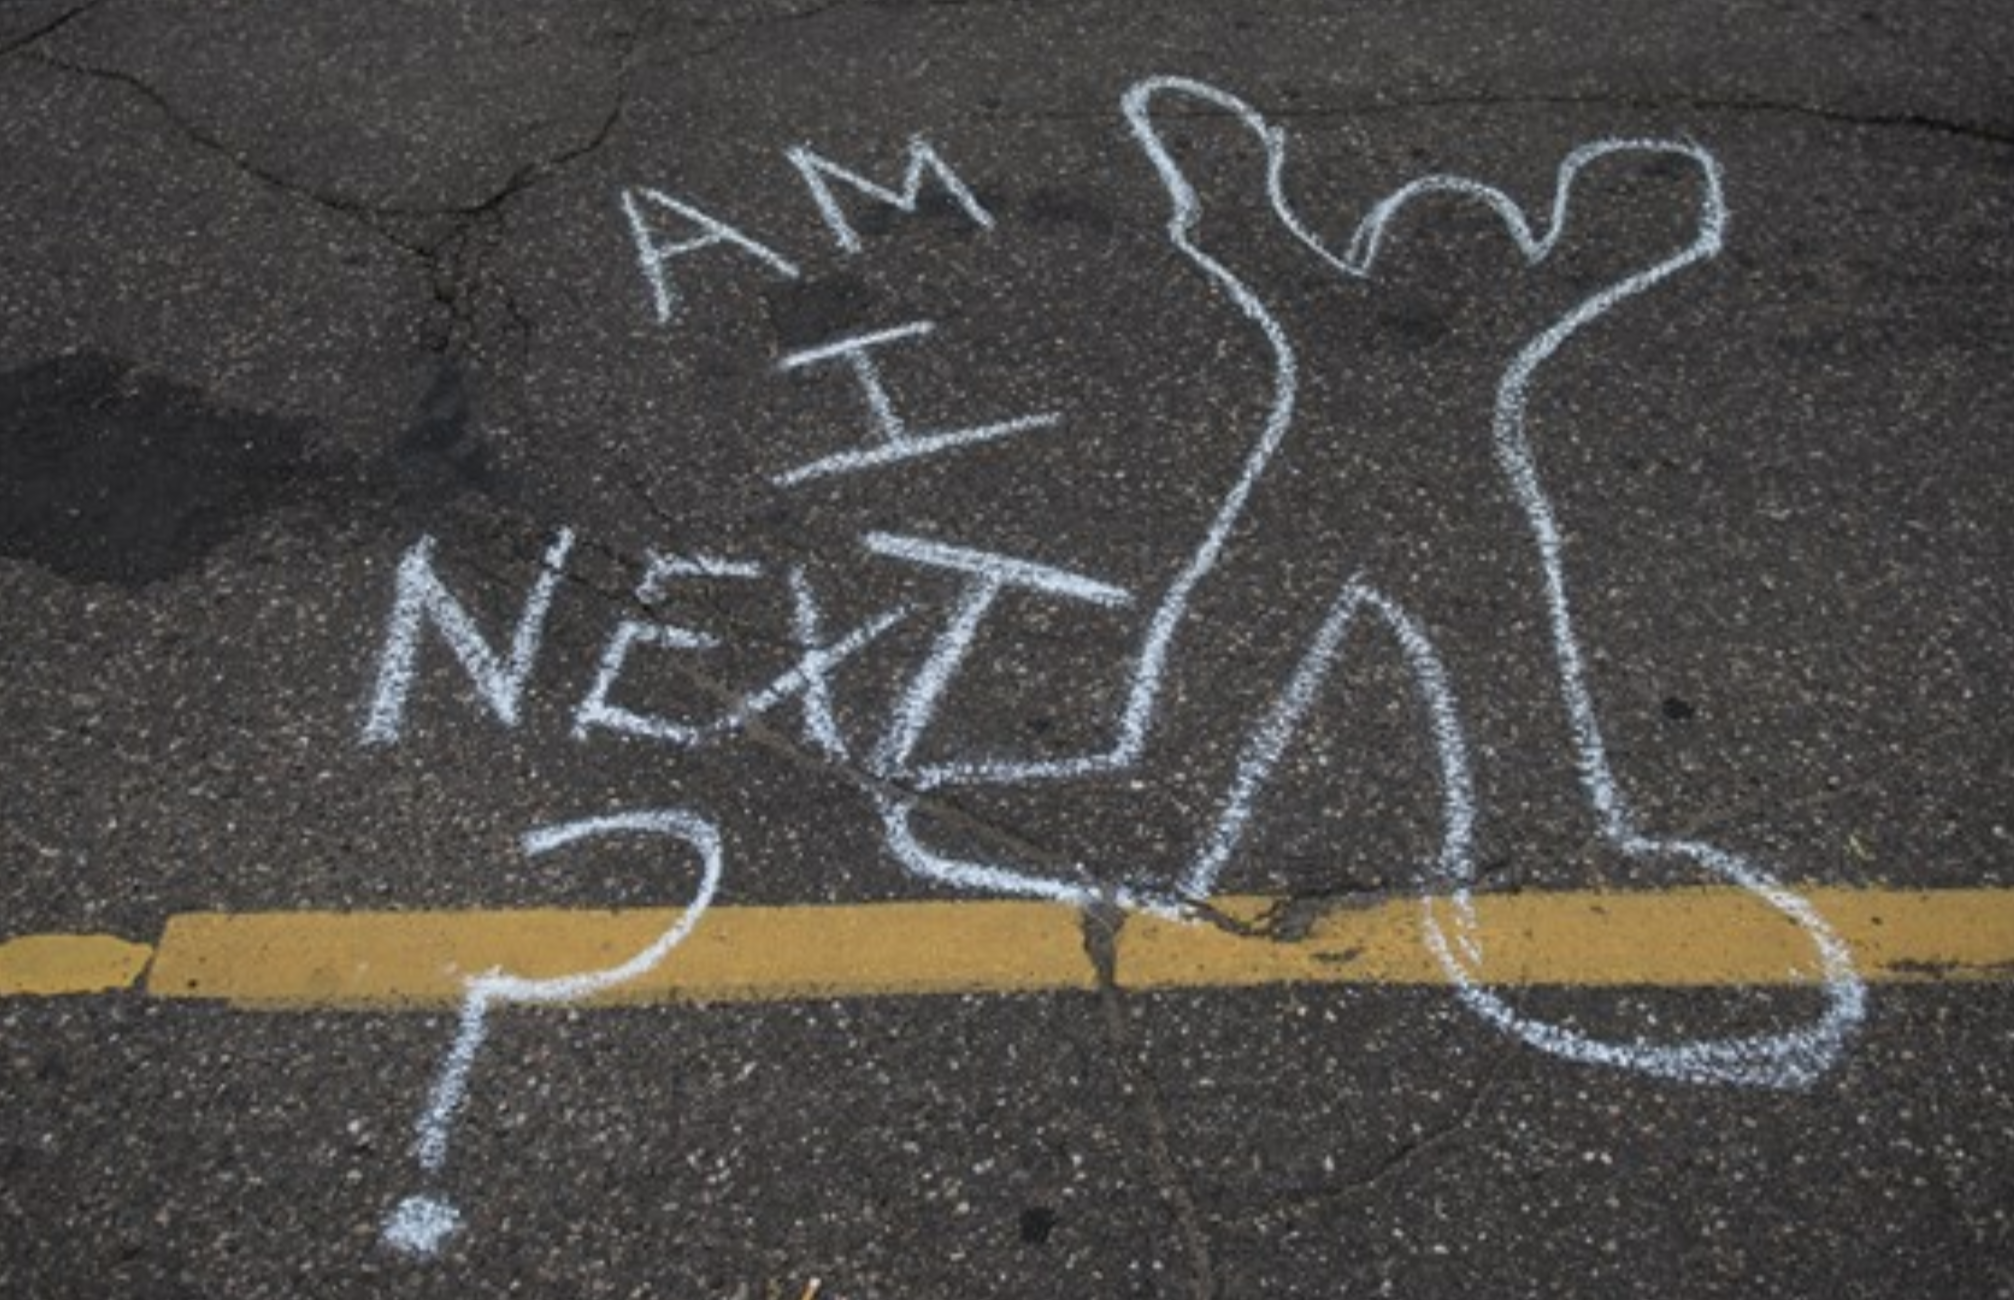 chalk outline of a body on the street with the words 'Am I next?'